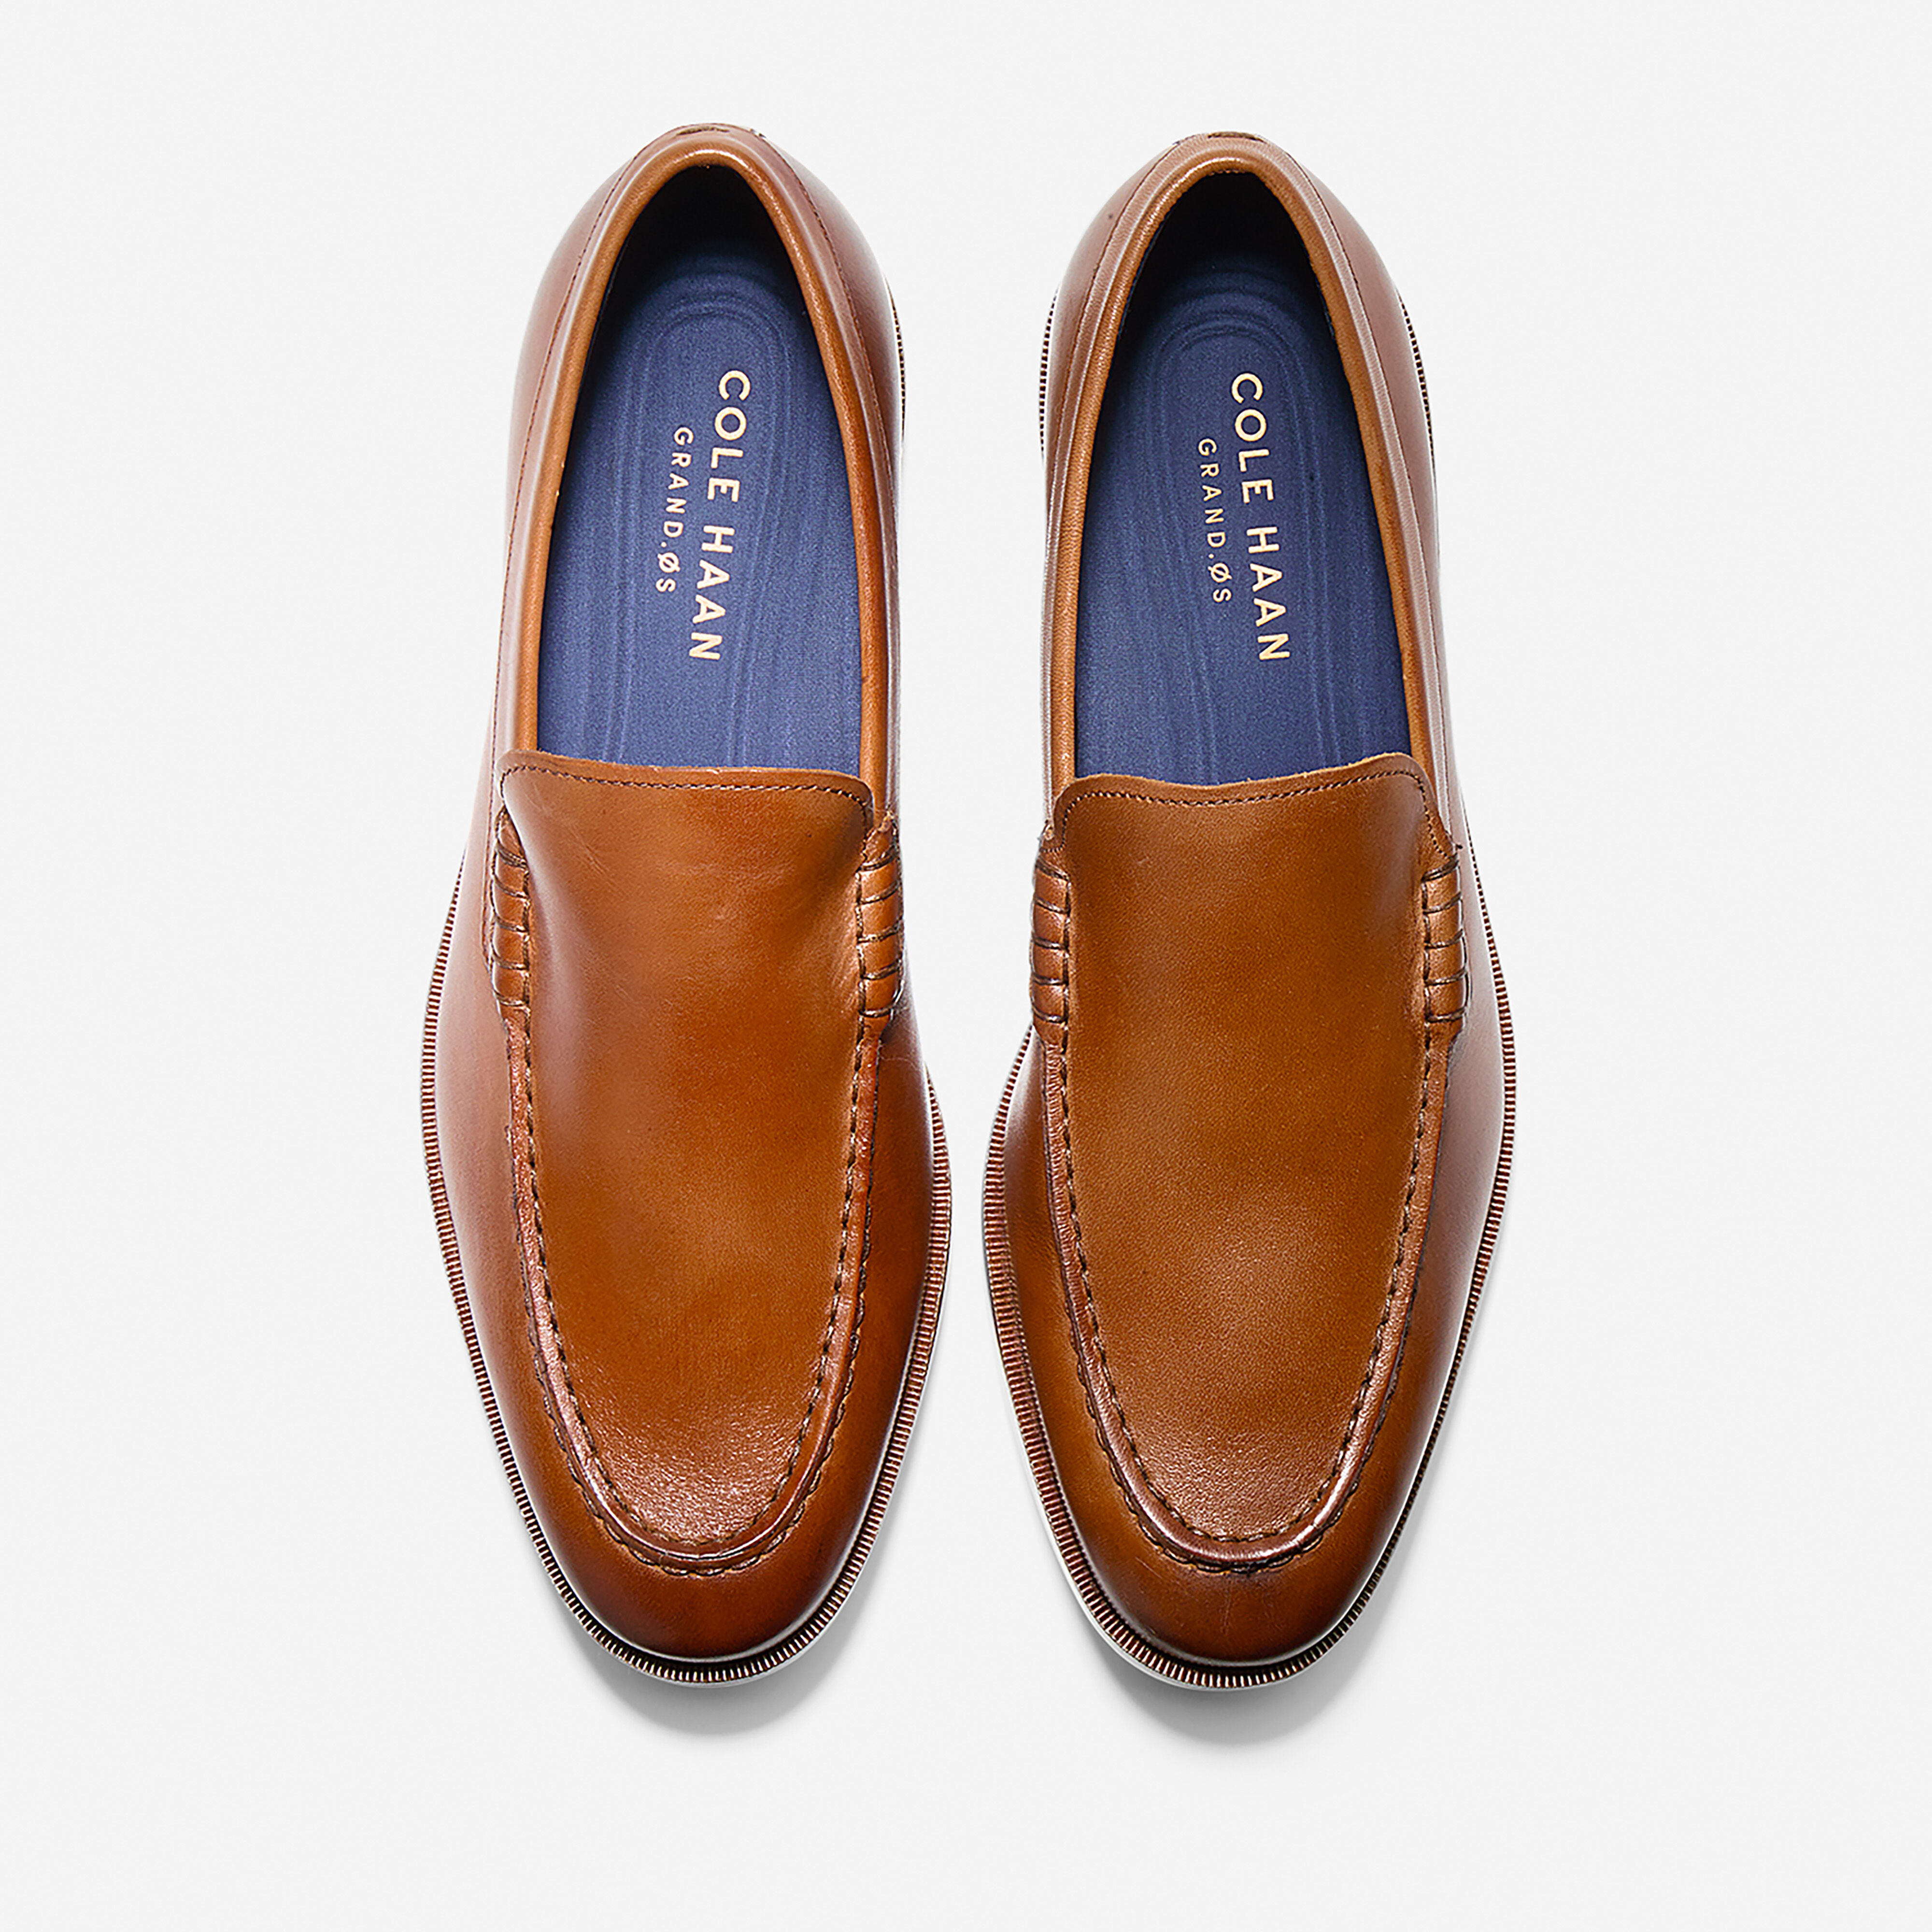 sale footlocker pictures Hamilton Grand Venetian Loafer visit new for sale outlet free shipping amazon for sale girZwT9